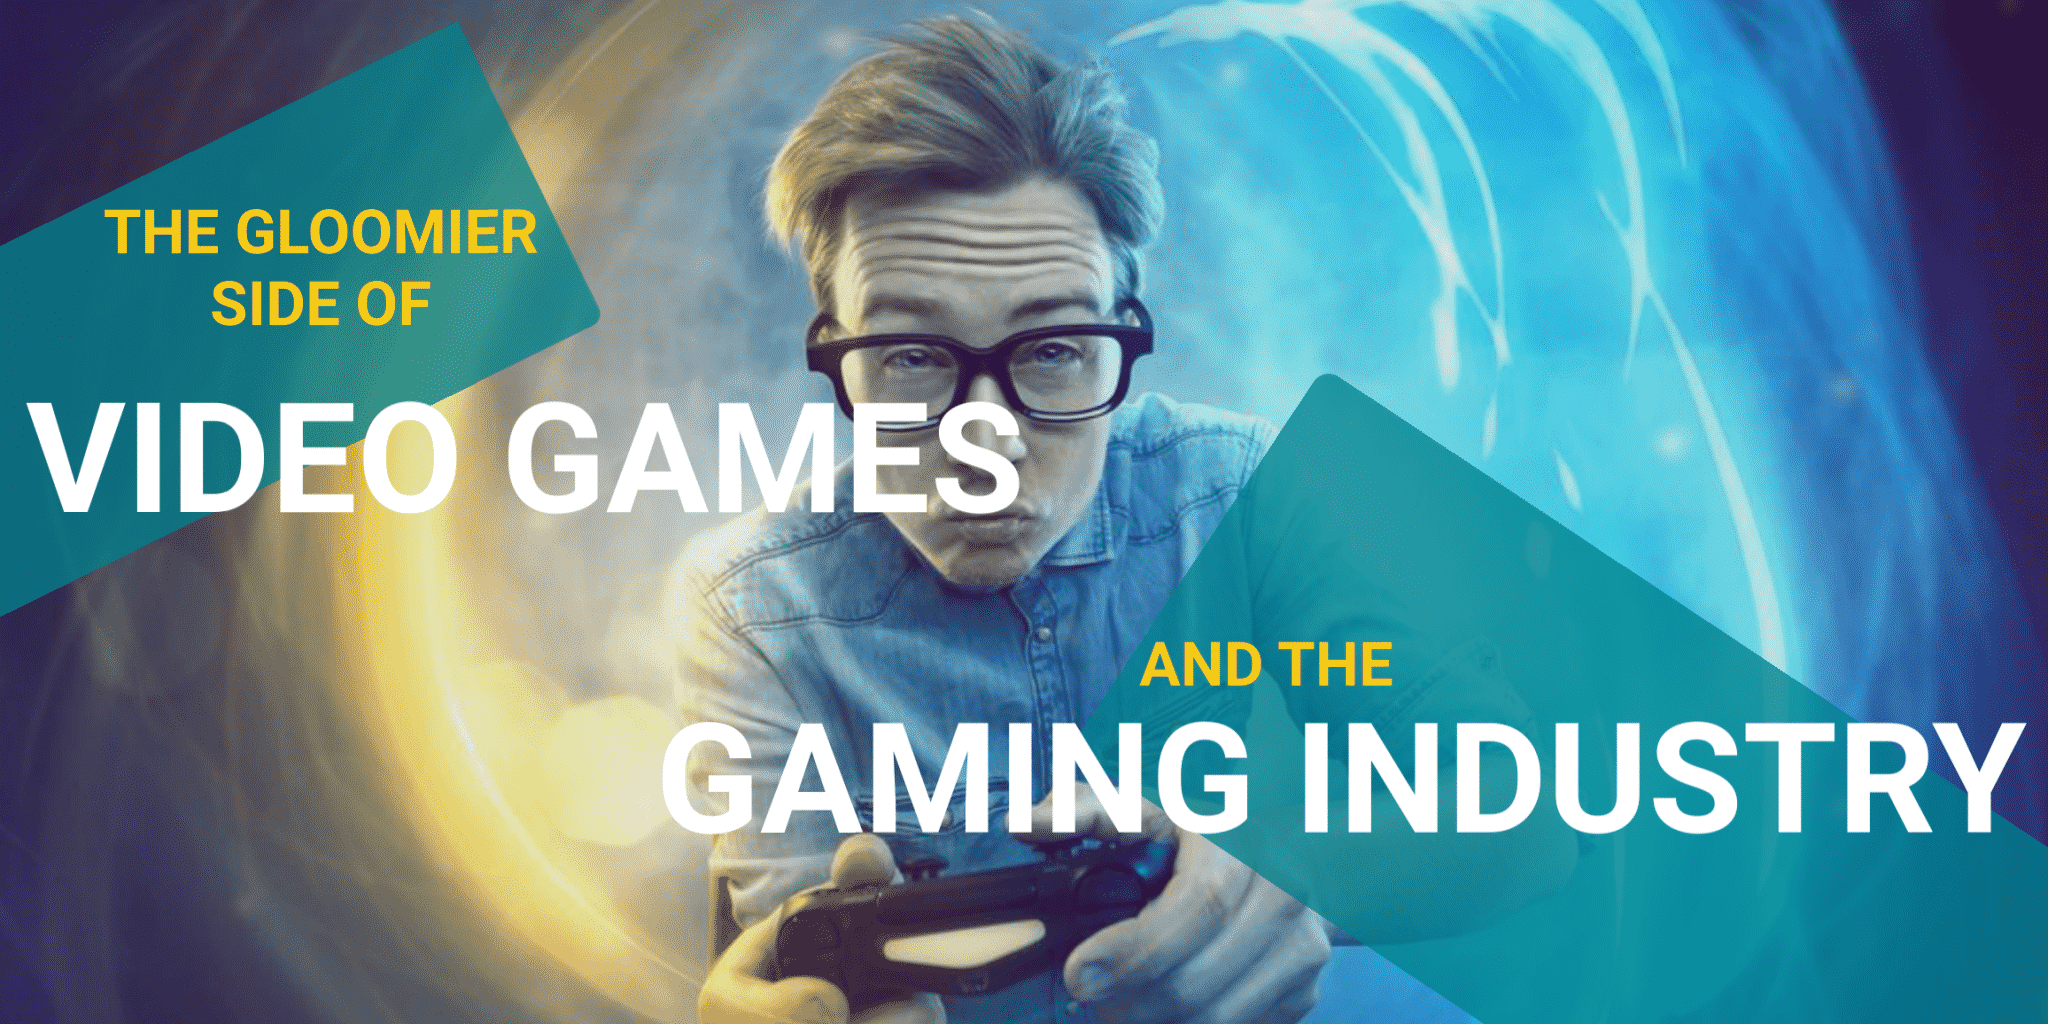 Video Games and the Gaming Industry